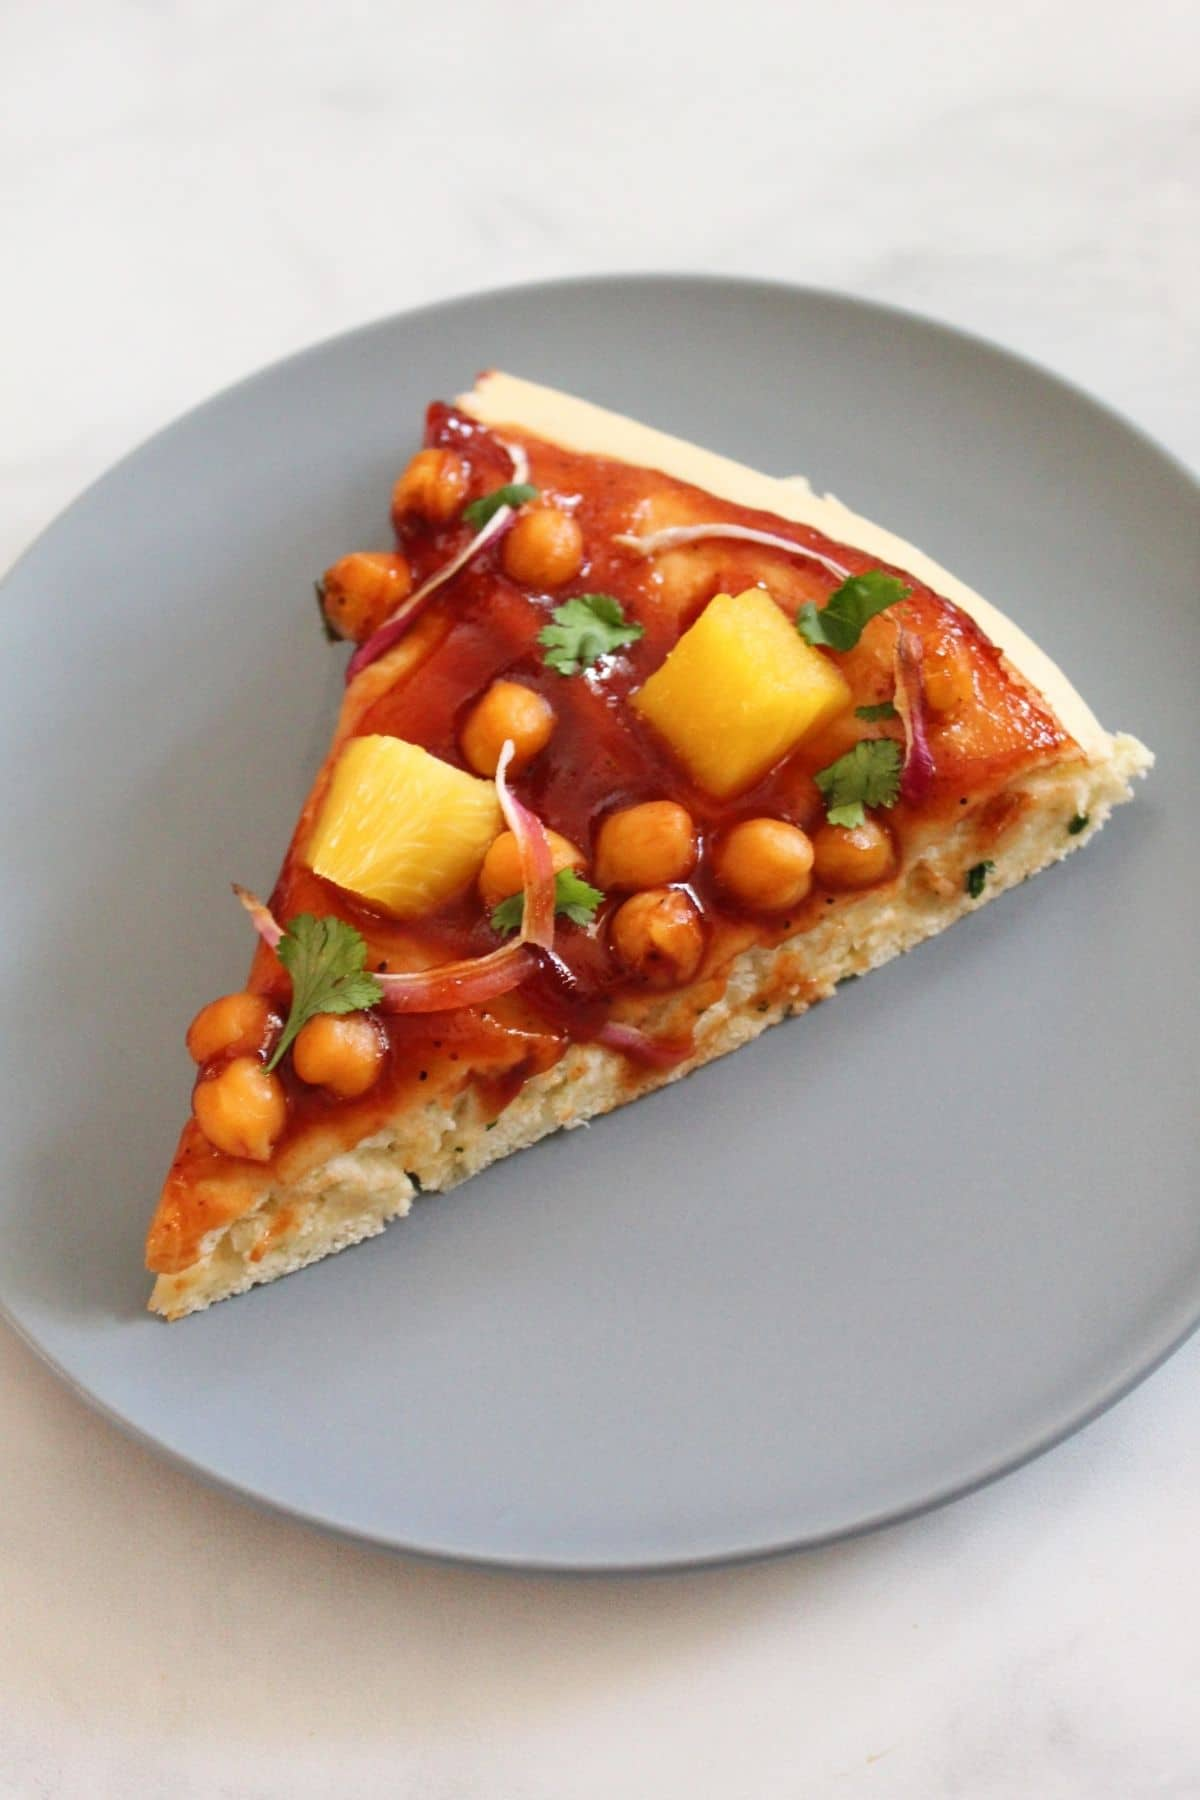 one slice of vegan barbecue pizza on blue plate